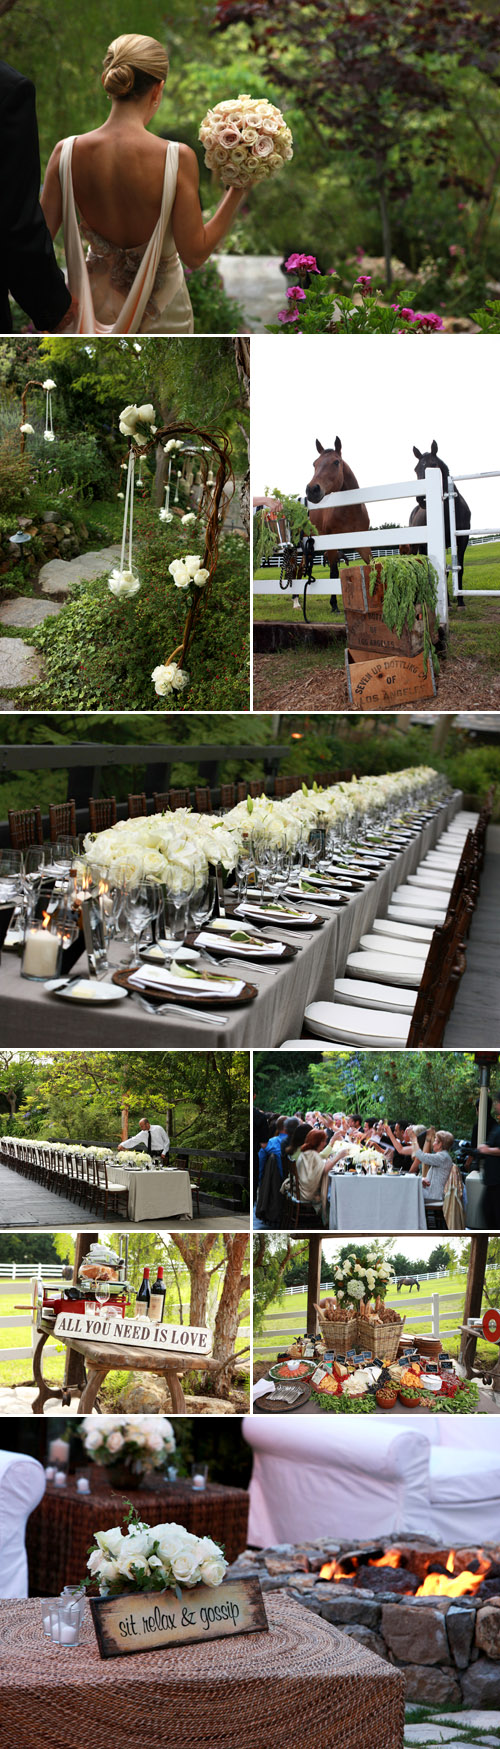 Malibu farm wedding design by Lisa Gorjestani of Details Event Planning, photos by Starla Fortunato